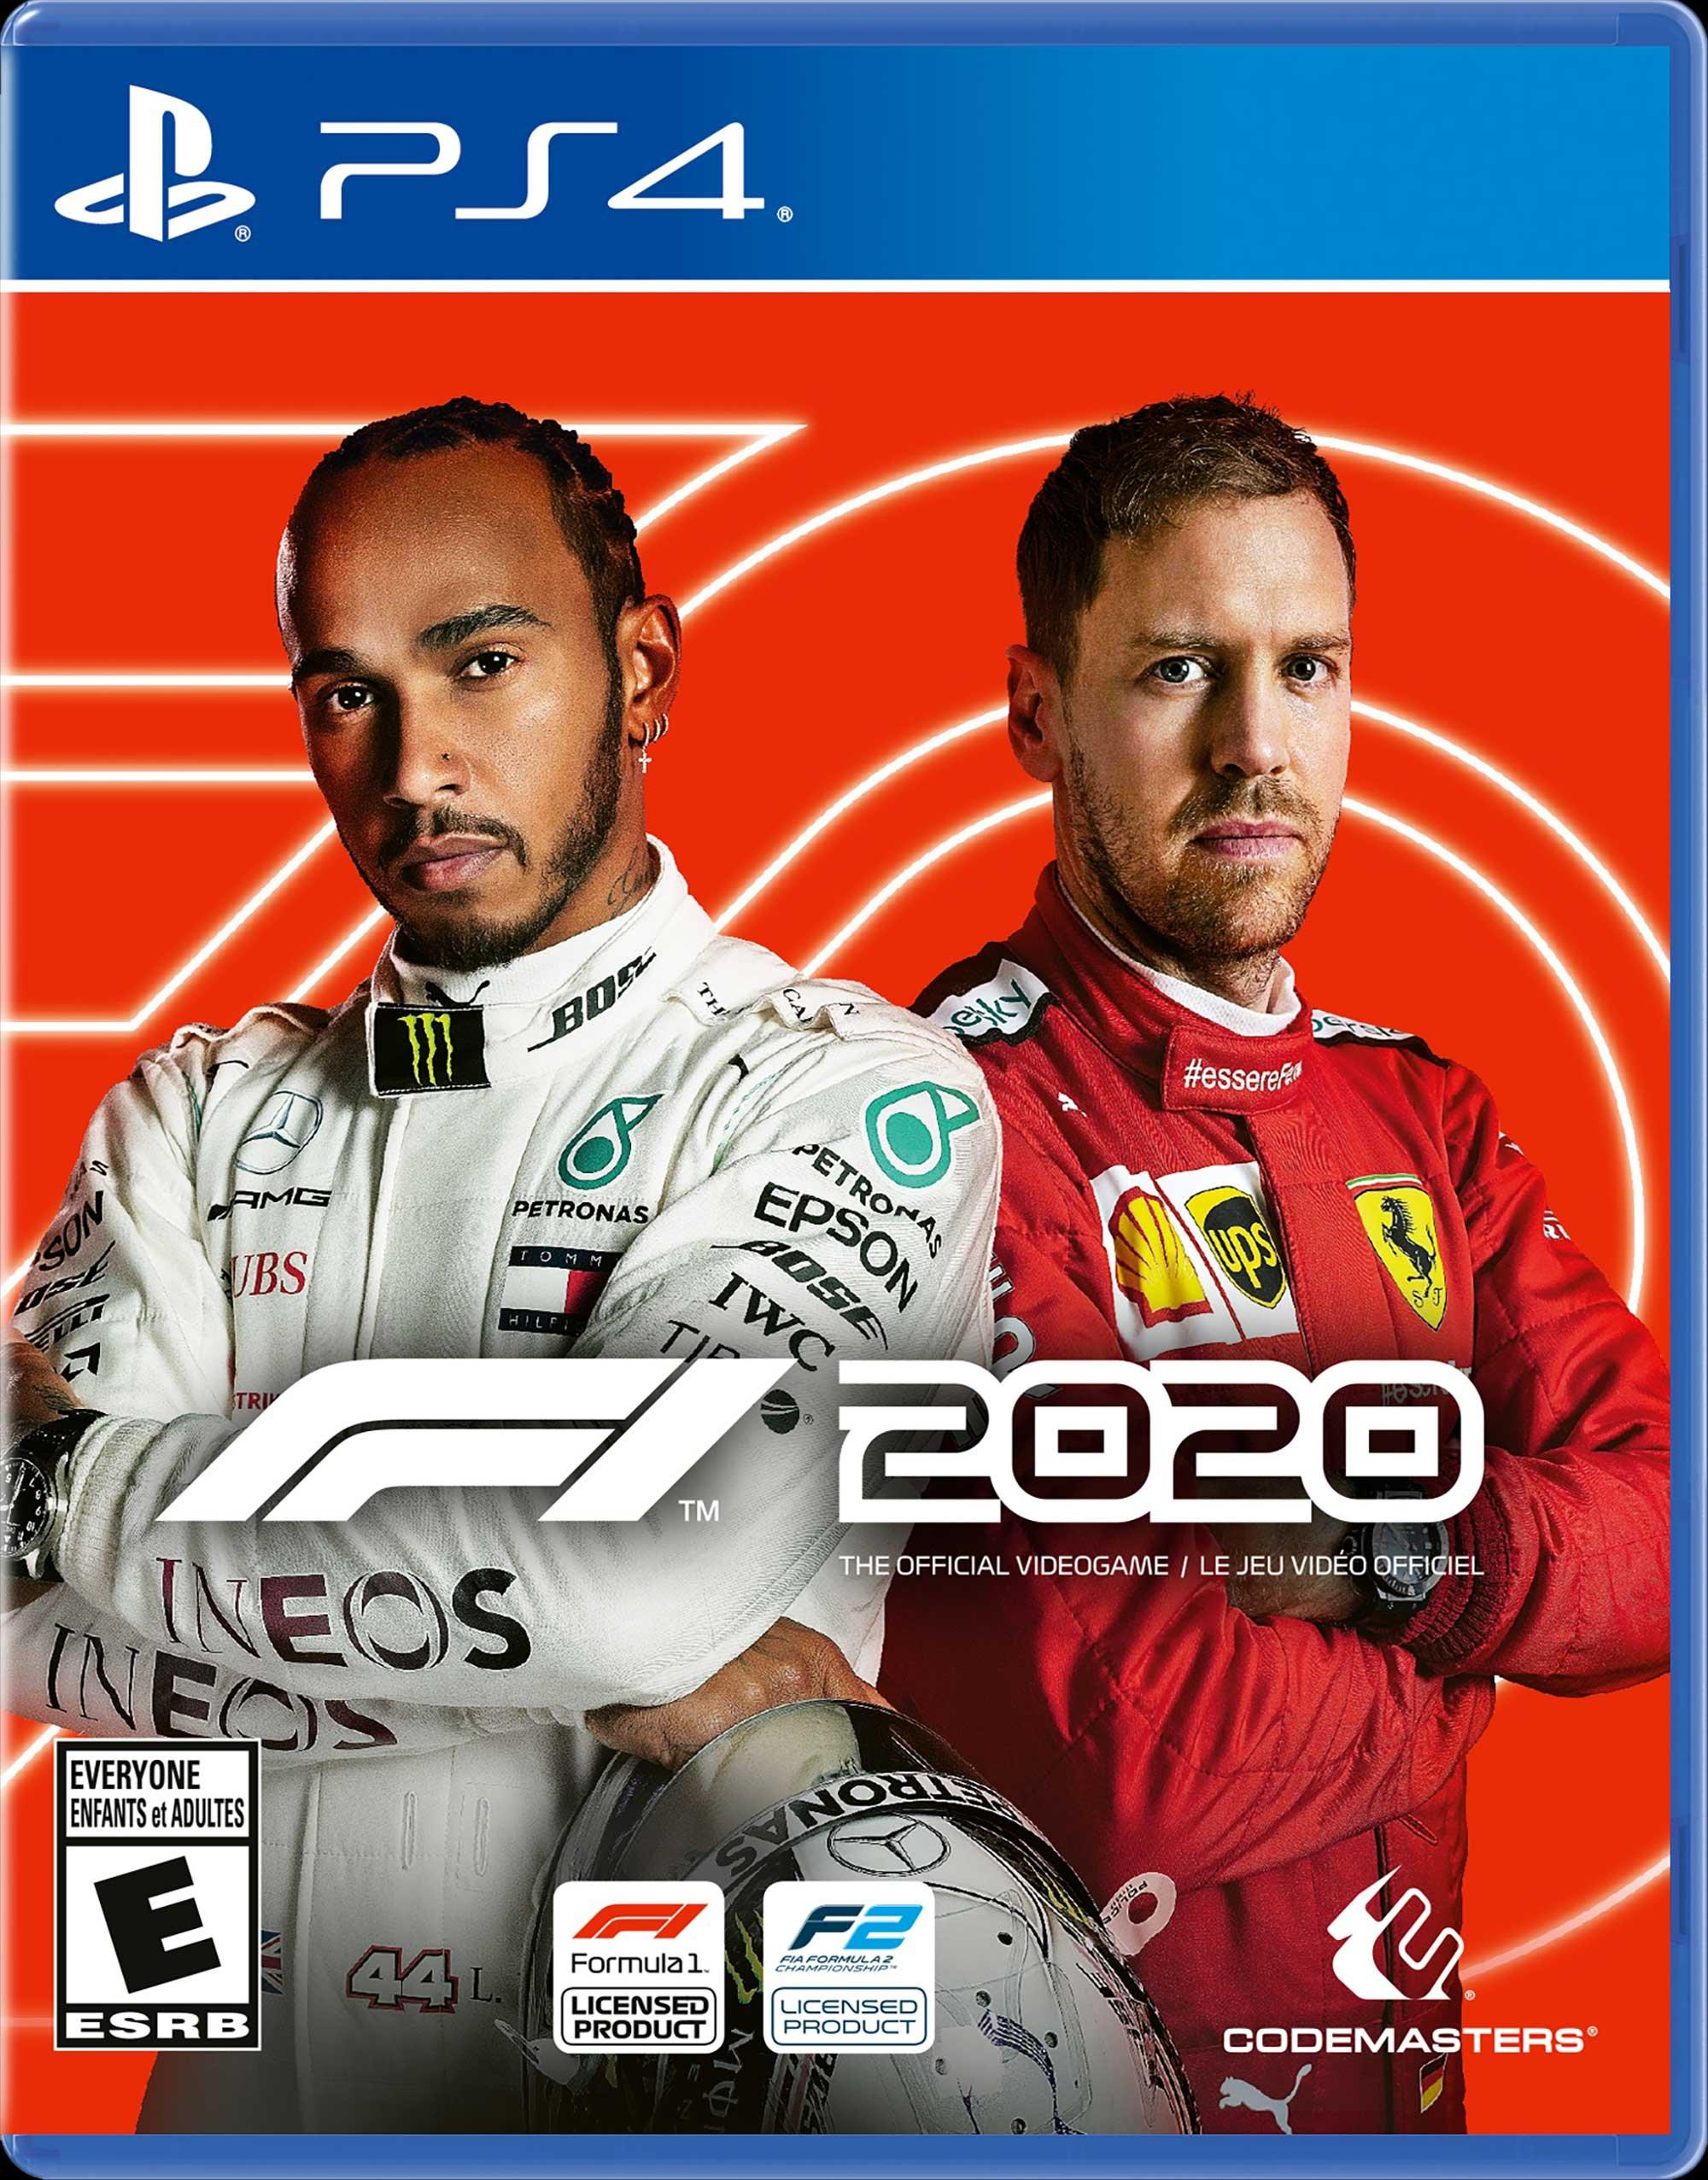 F1 2020 | PlayStation 4 | GameStop